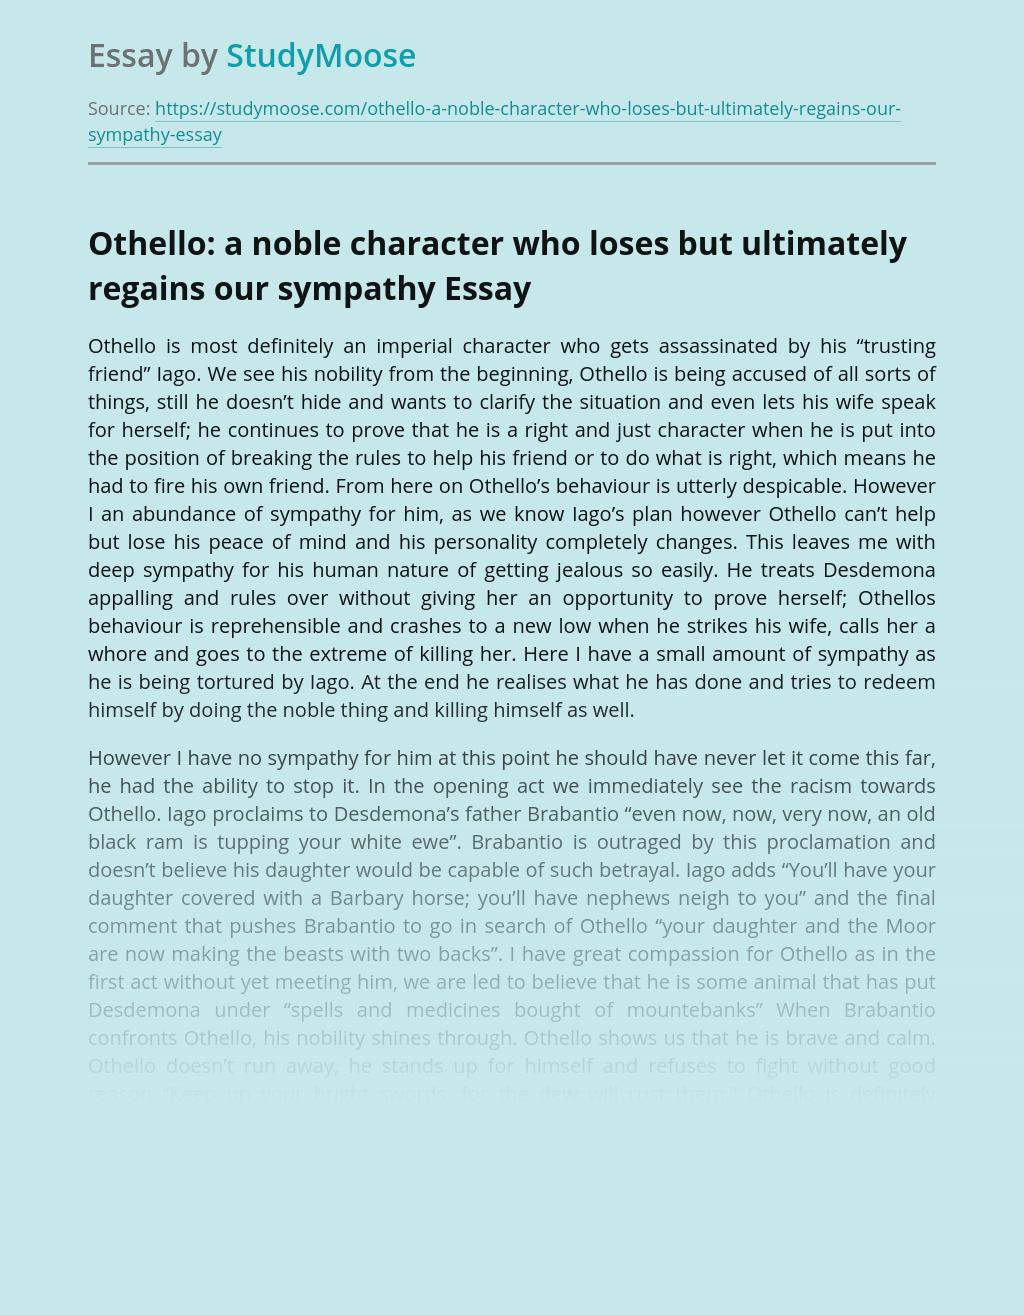 Othello: a noble character who loses but ultimately regains our sympathy